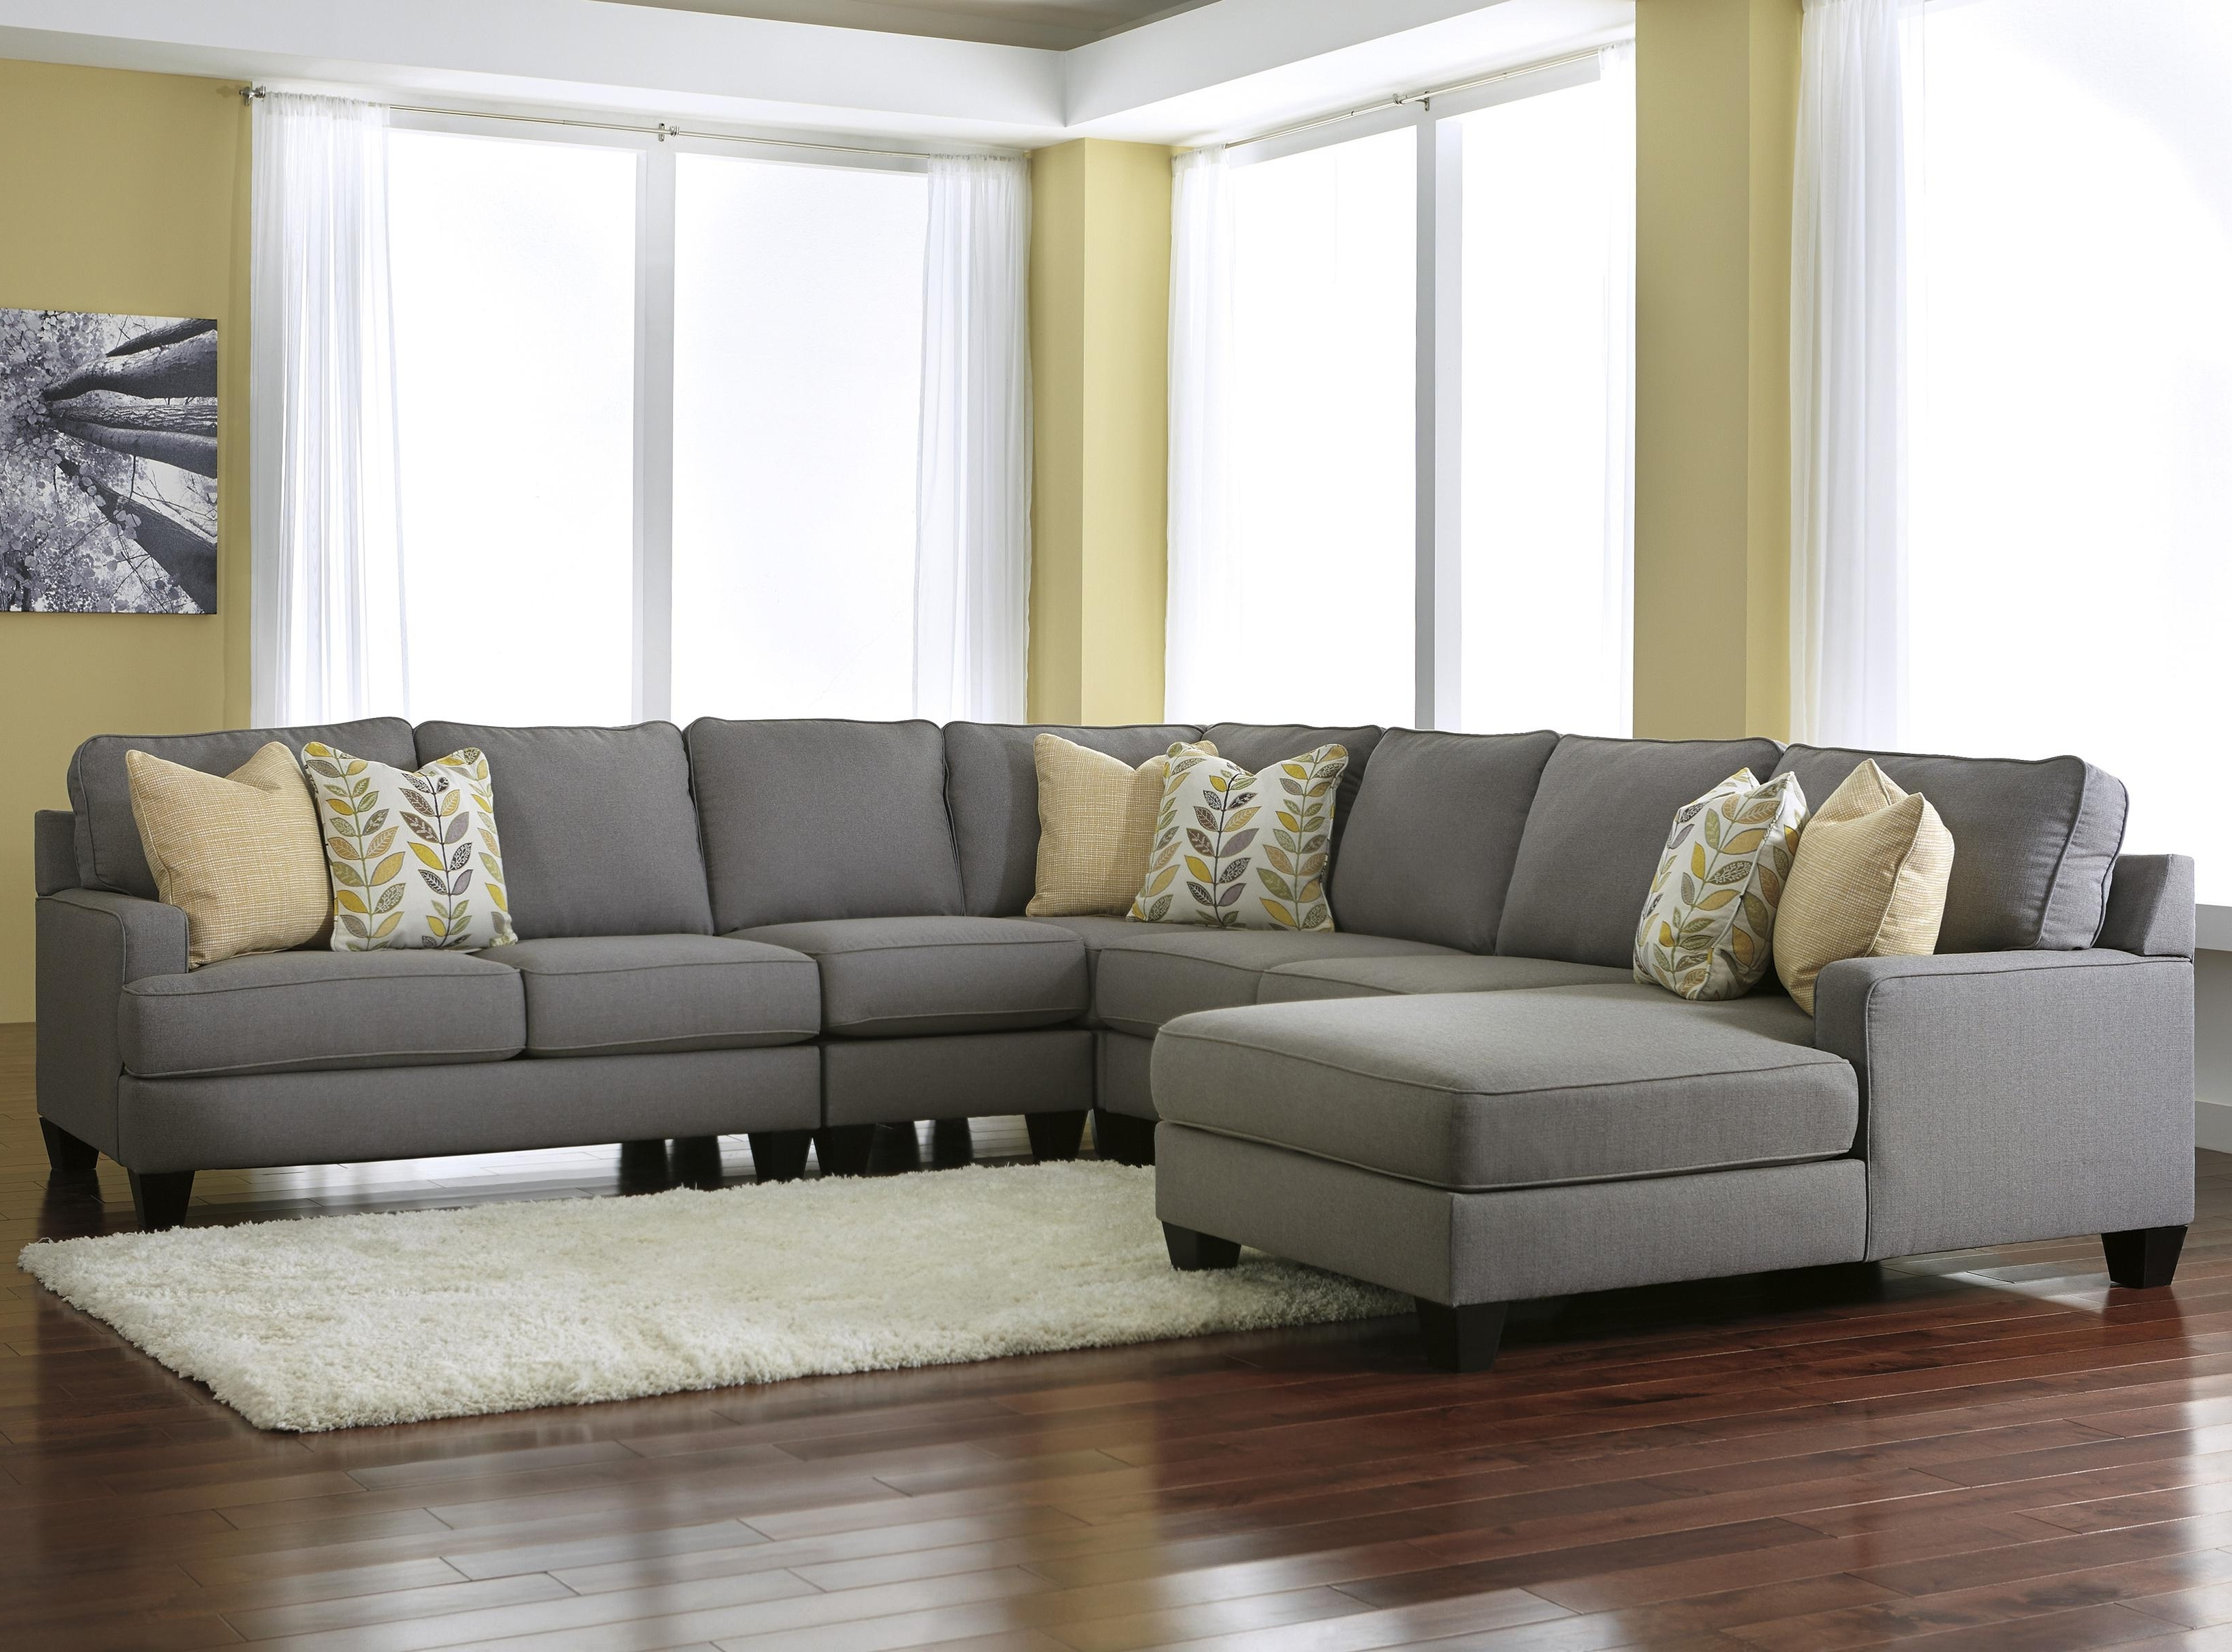 Fashionable Signature Designashley Chamberly – Alloy Modern 5 Piece Throughout Johnson City Tn Sectional Sofas (View 6 of 20)